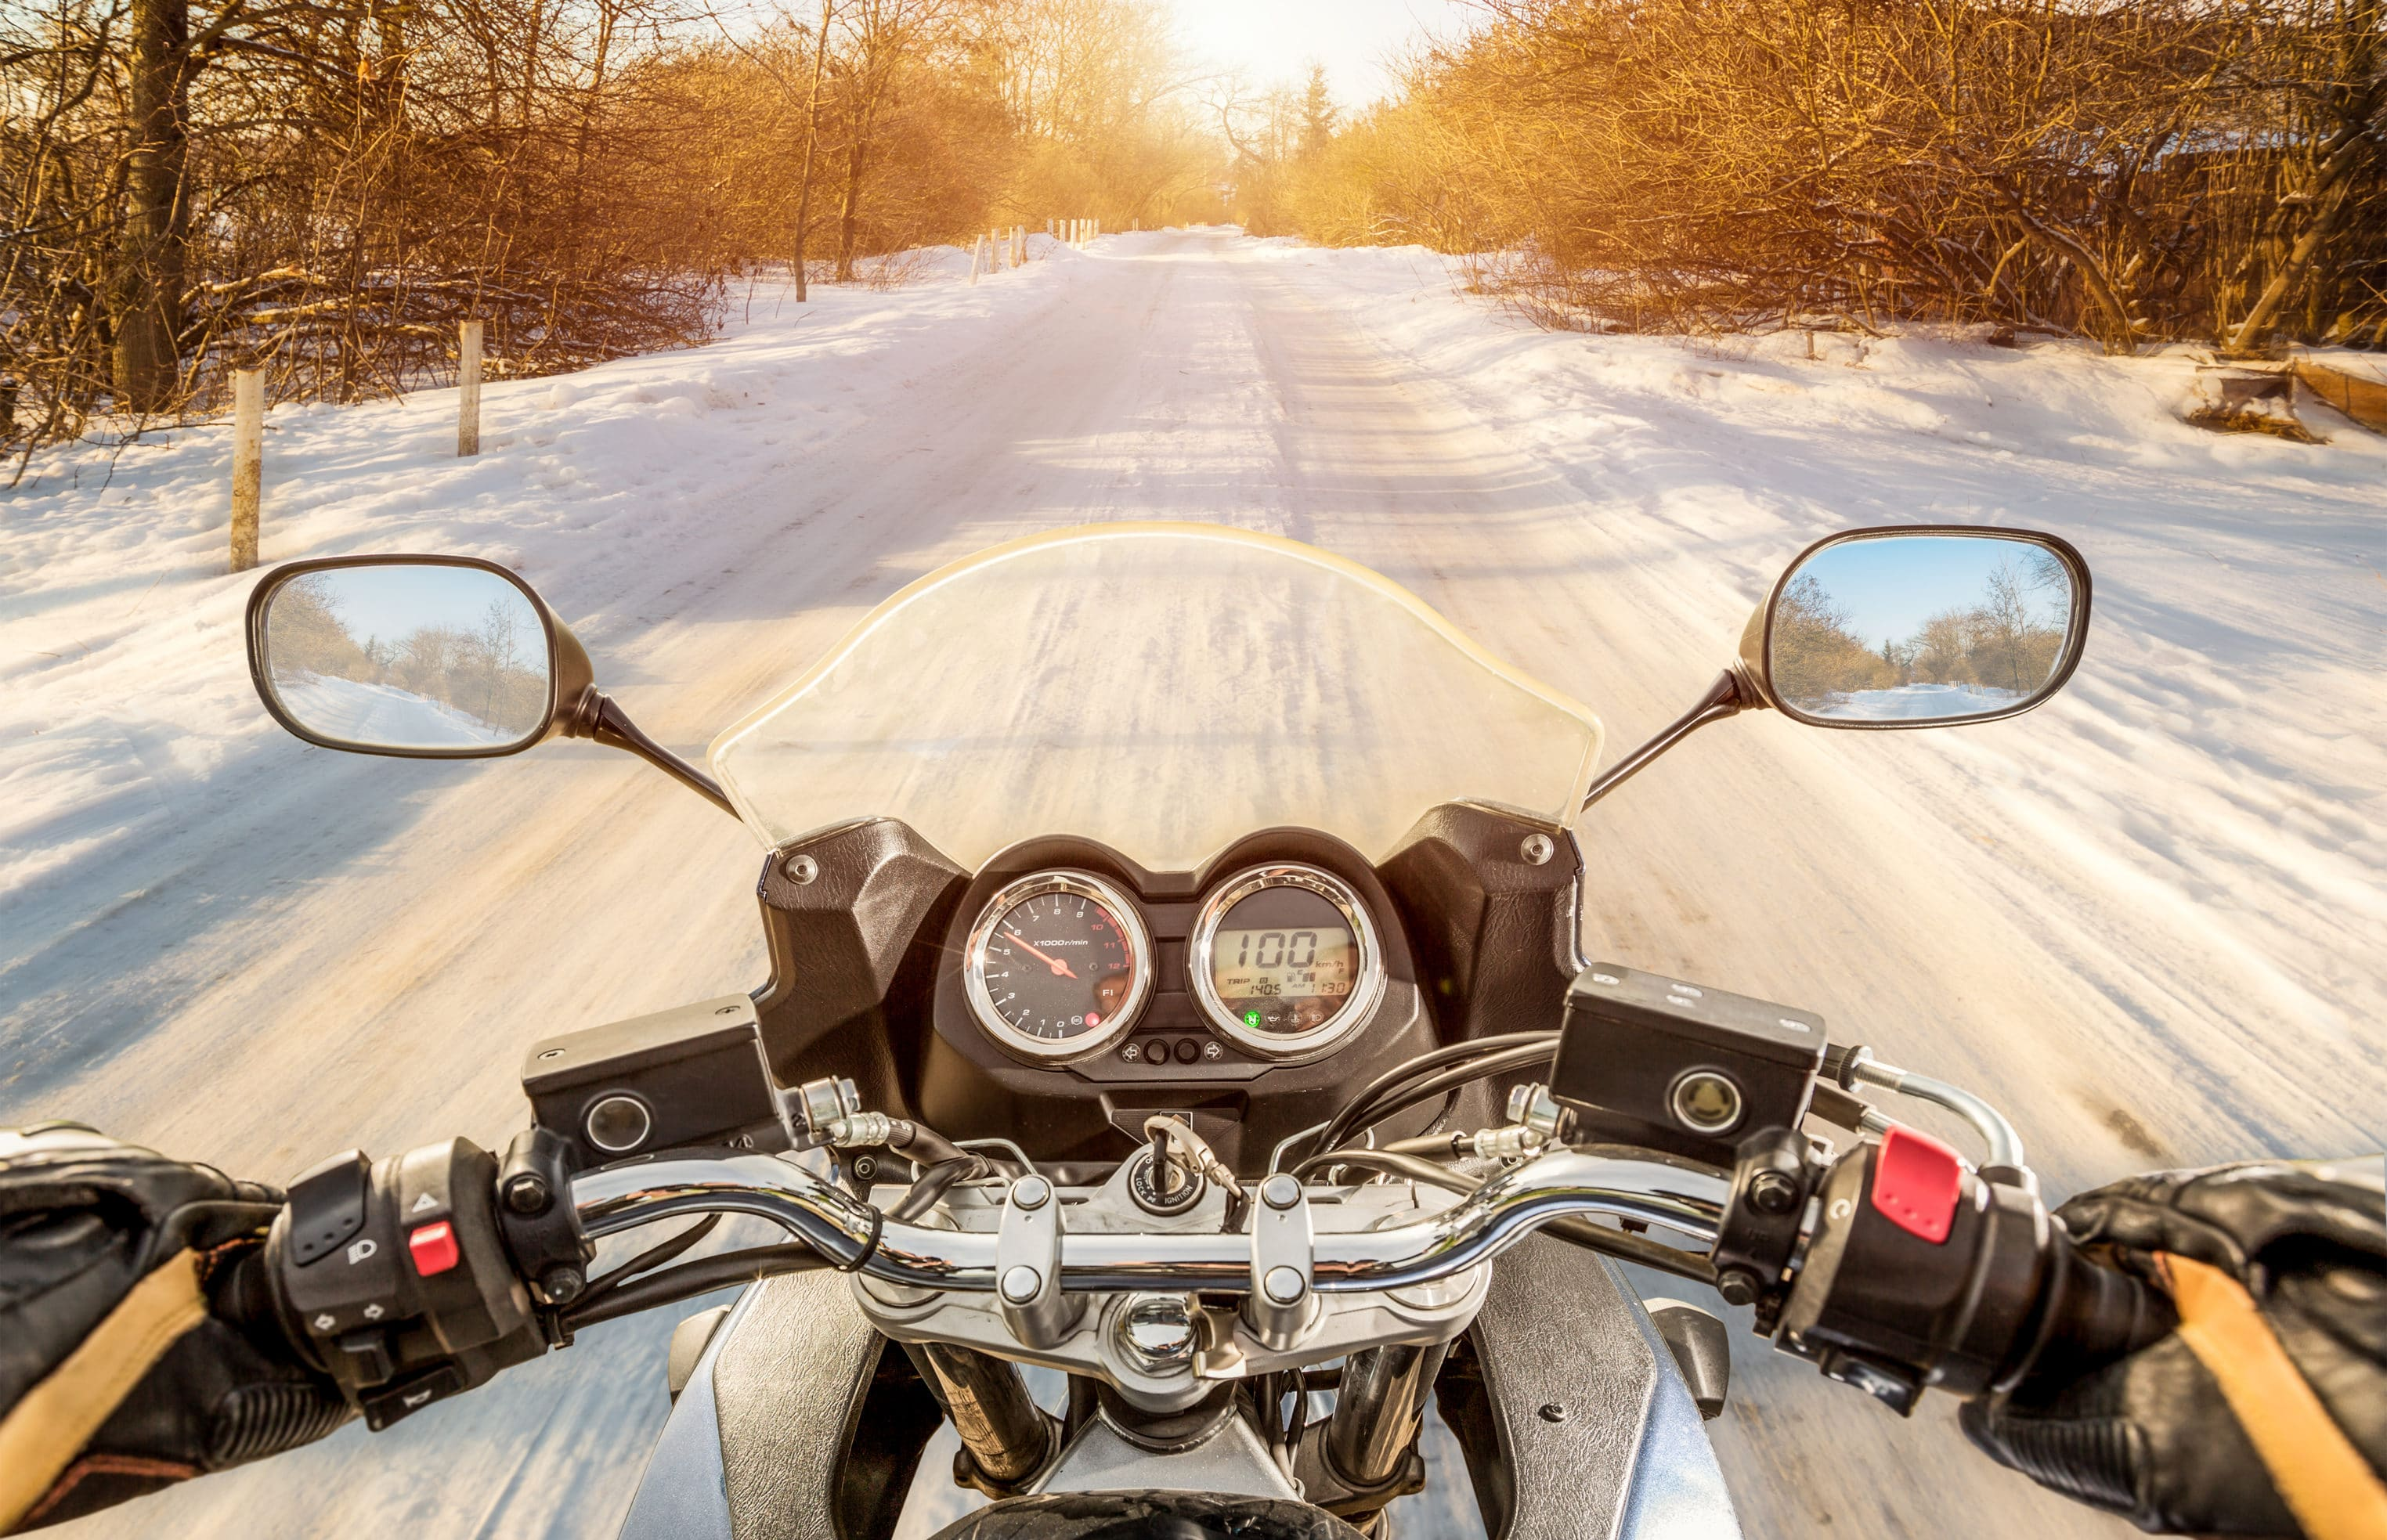 From the view of a motorcycle driver, a winter road covered in snow and the dashboard of a motorcycle.